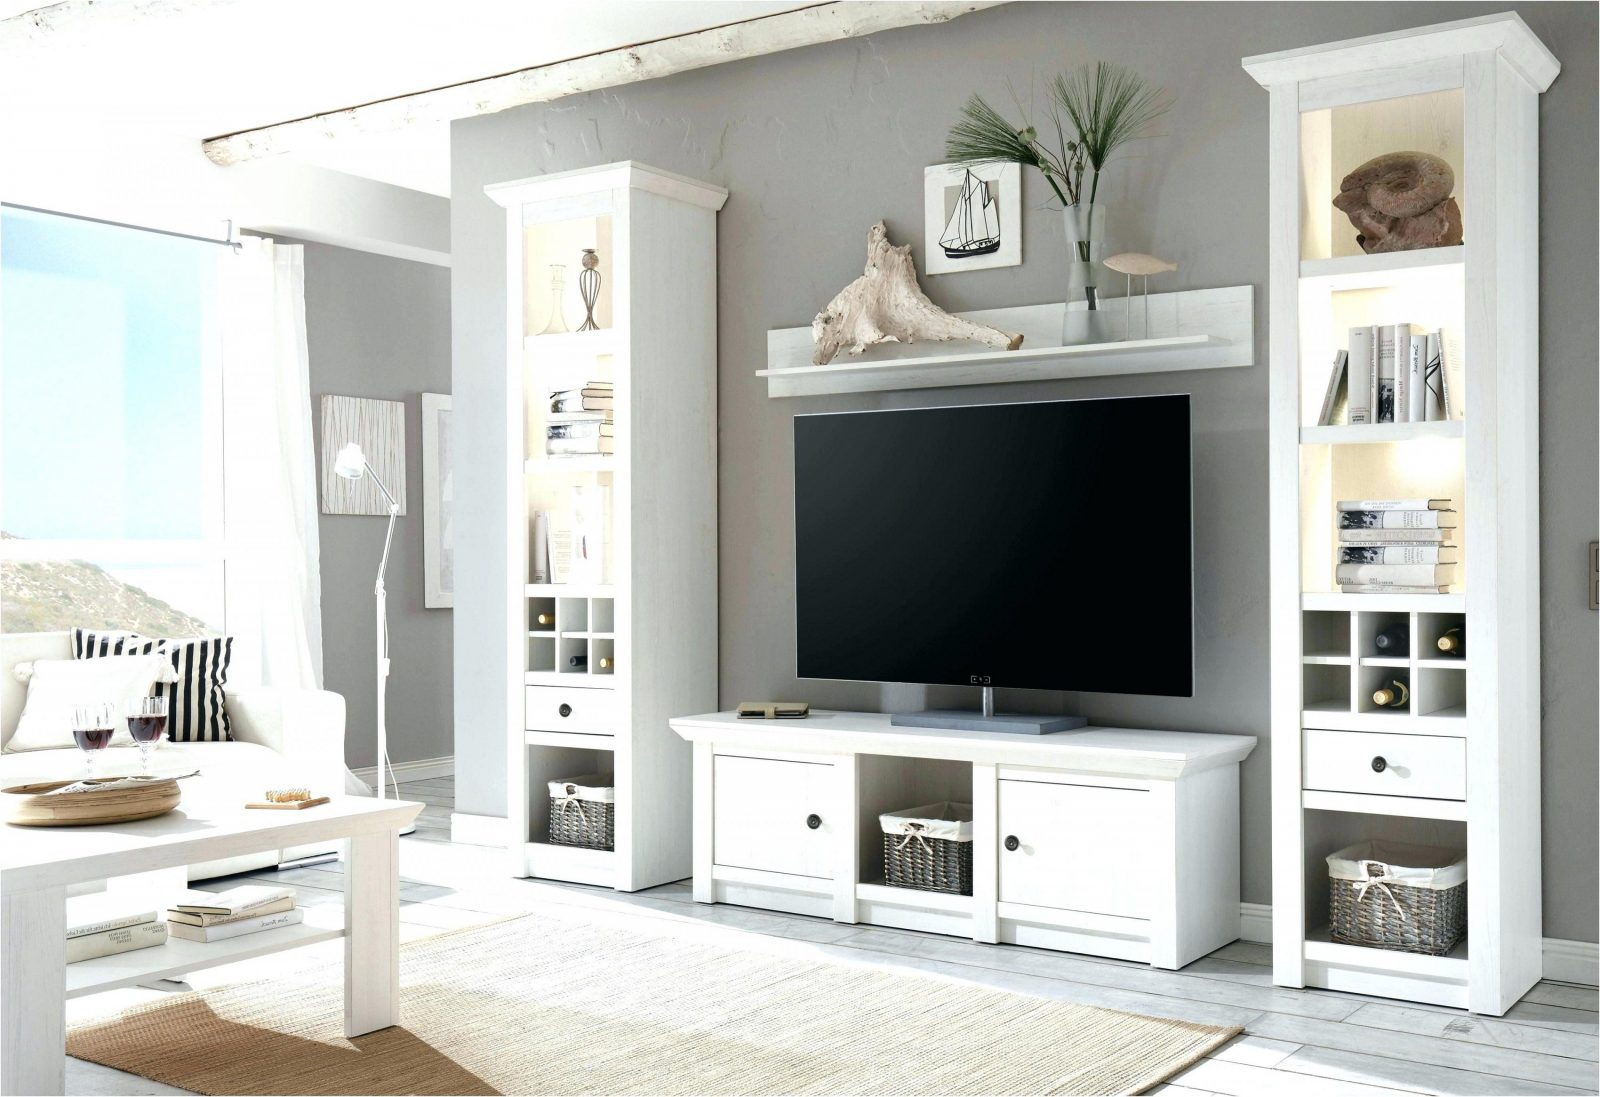 kauf auf rechnung als neukunde gallery of wohnwand raten. Black Bedroom Furniture Sets. Home Design Ideas